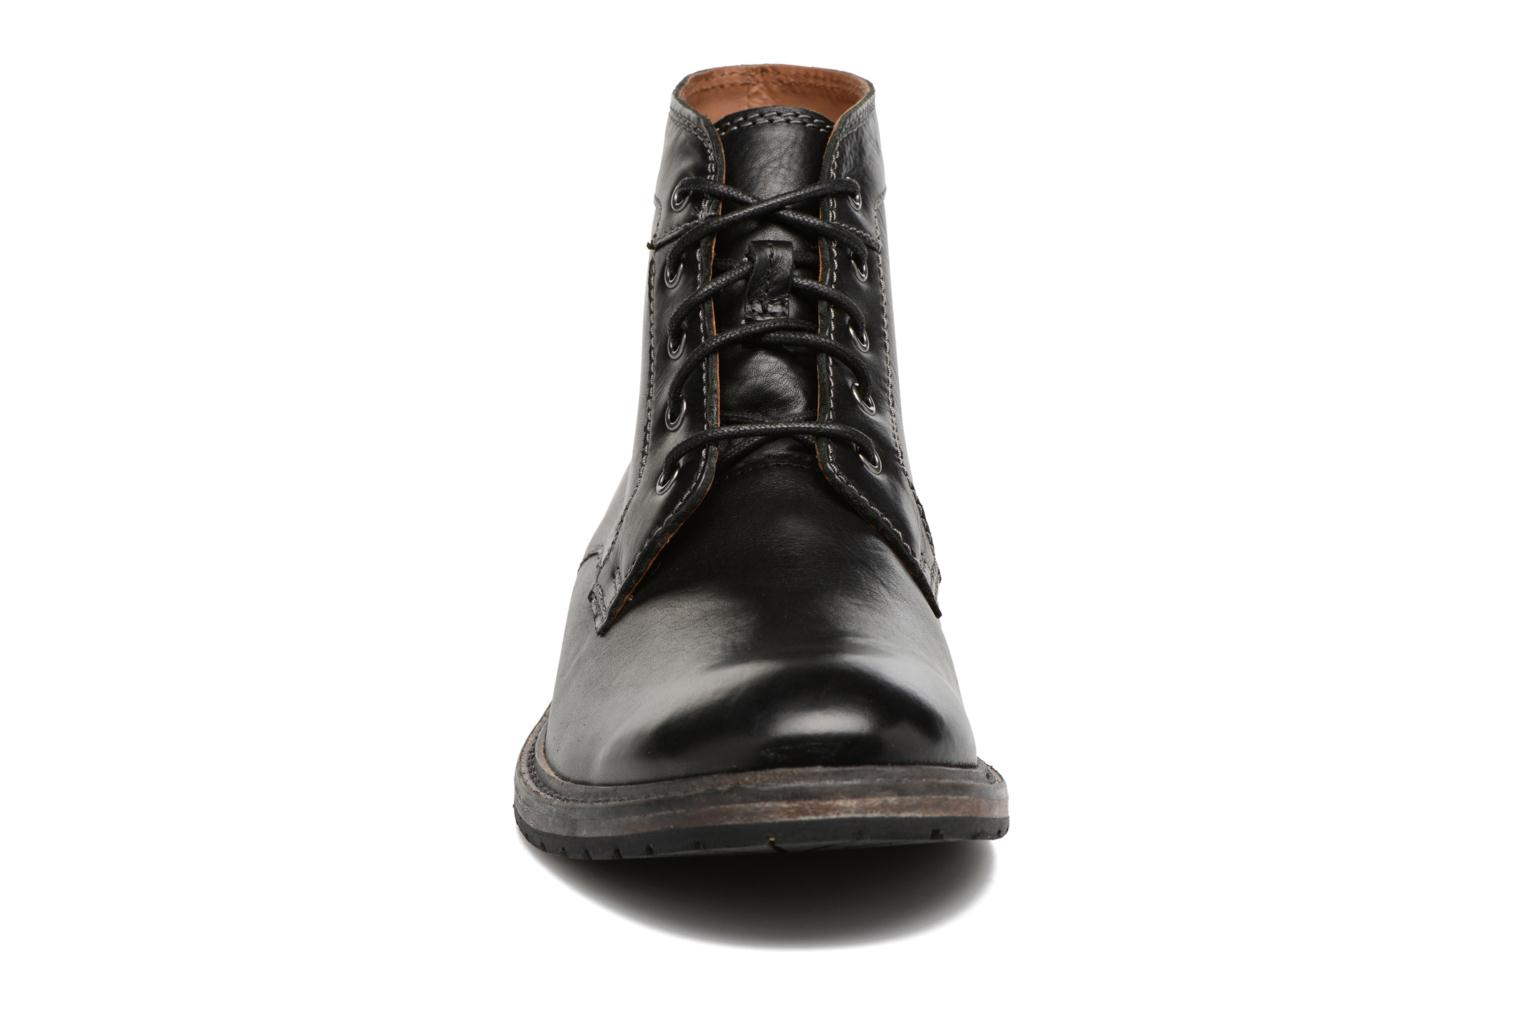 Clarkdale Bud Black leather